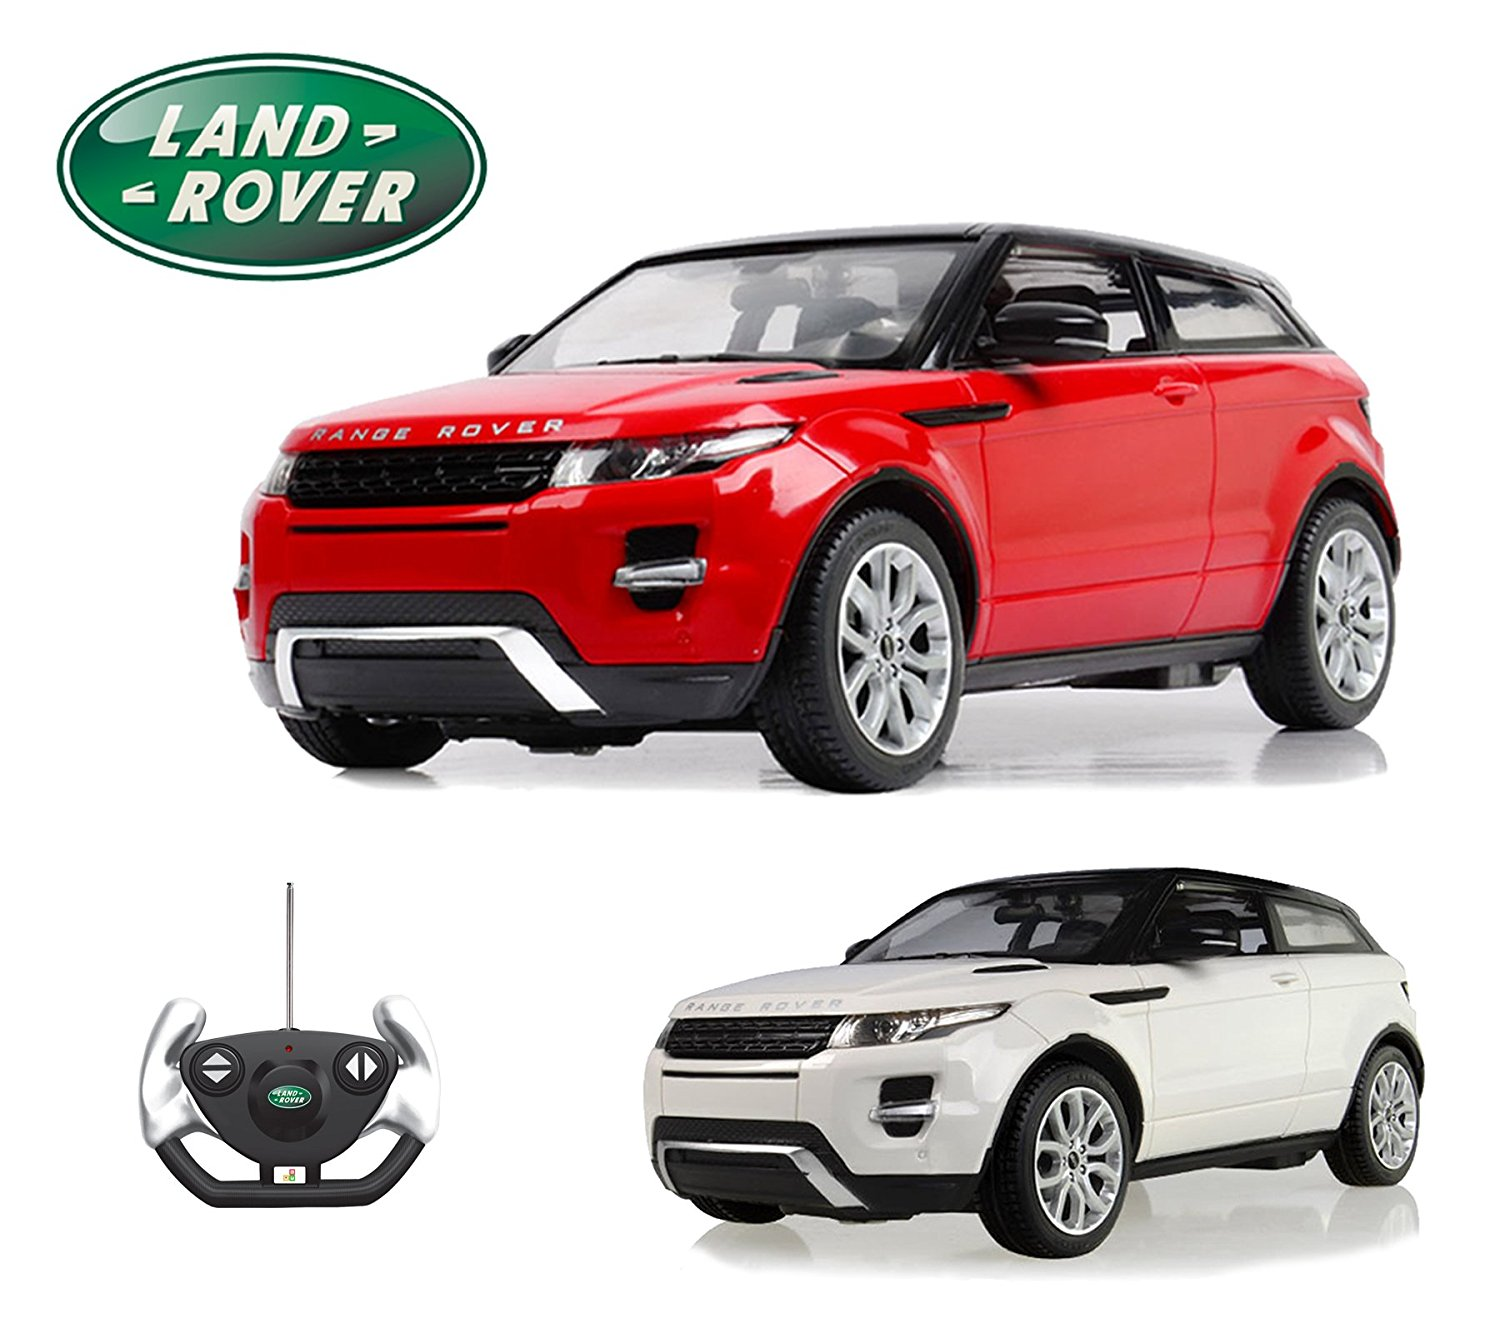 v brand new r c 1 14 scale range rover evoque amazon price colours may vary. Black Bedroom Furniture Sets. Home Design Ideas